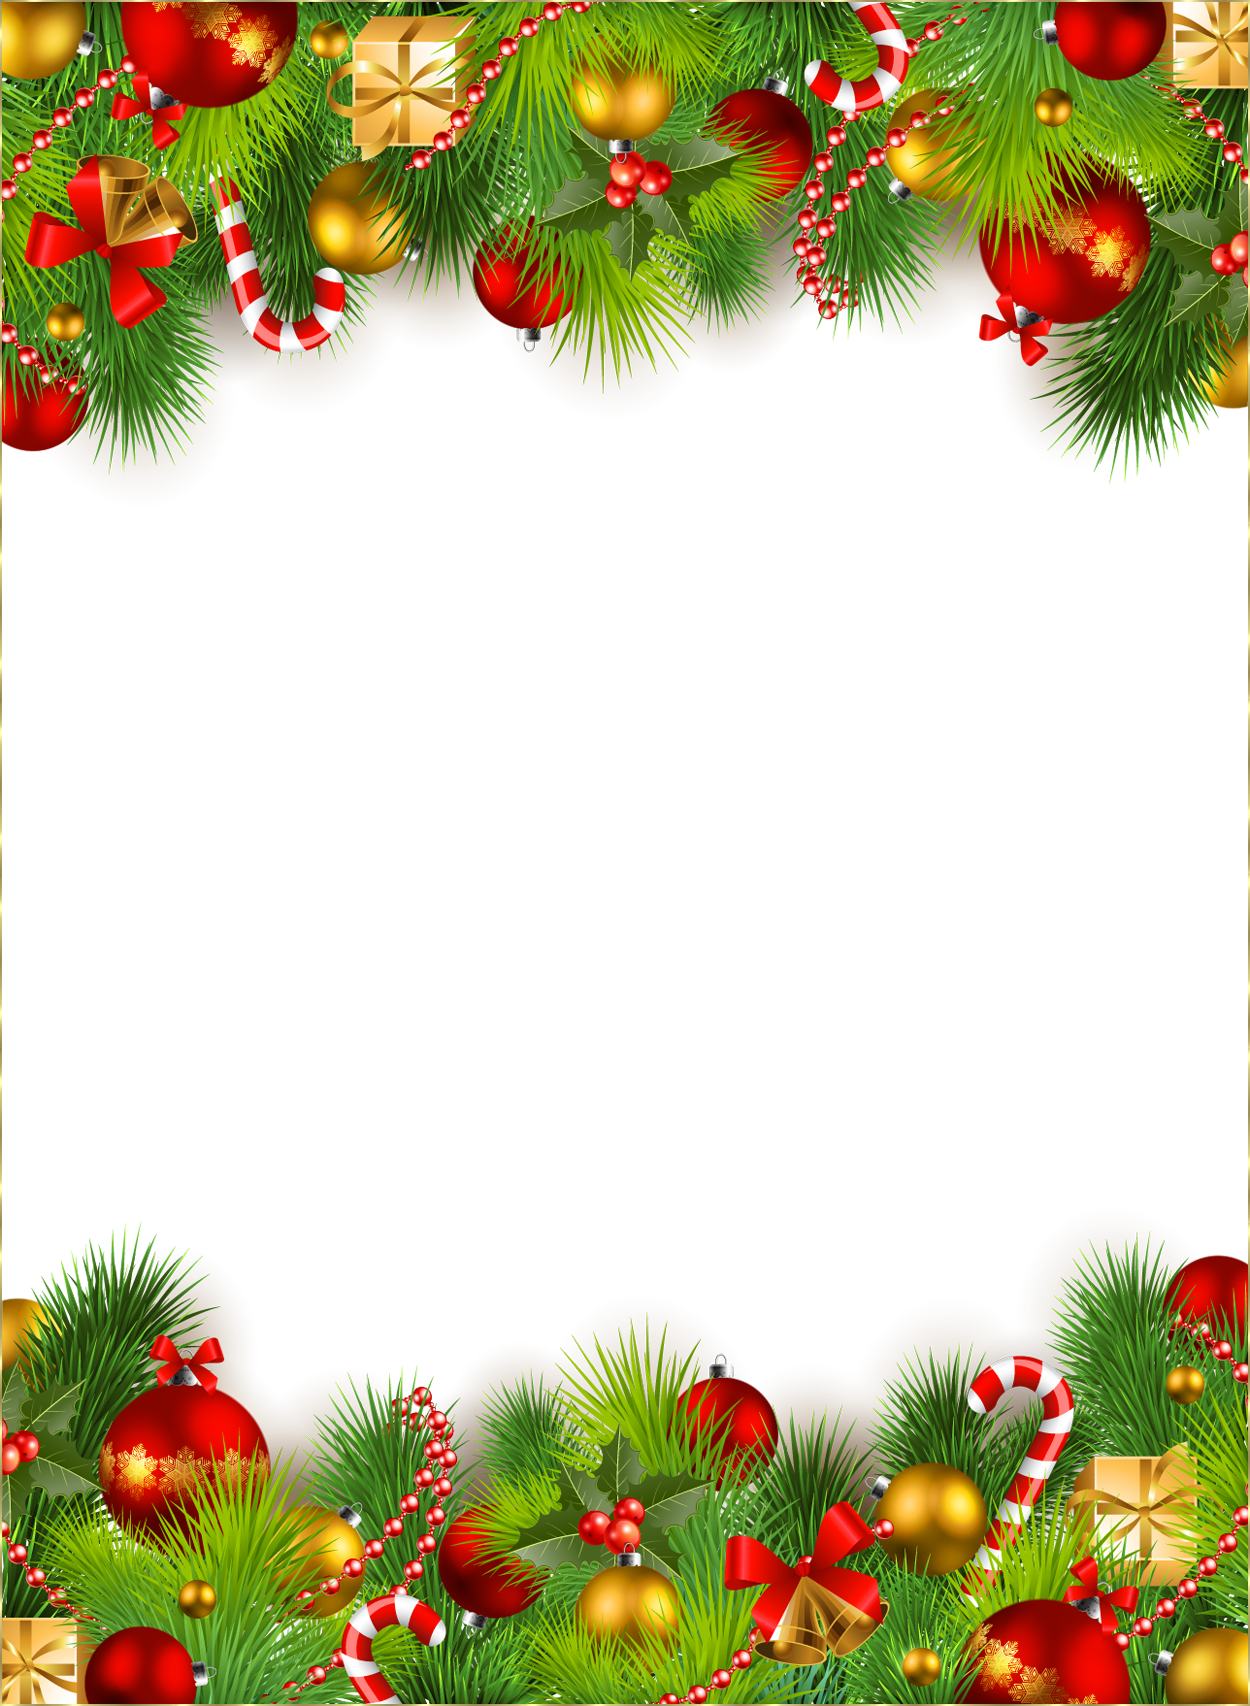 free christmas photo frames and borders png